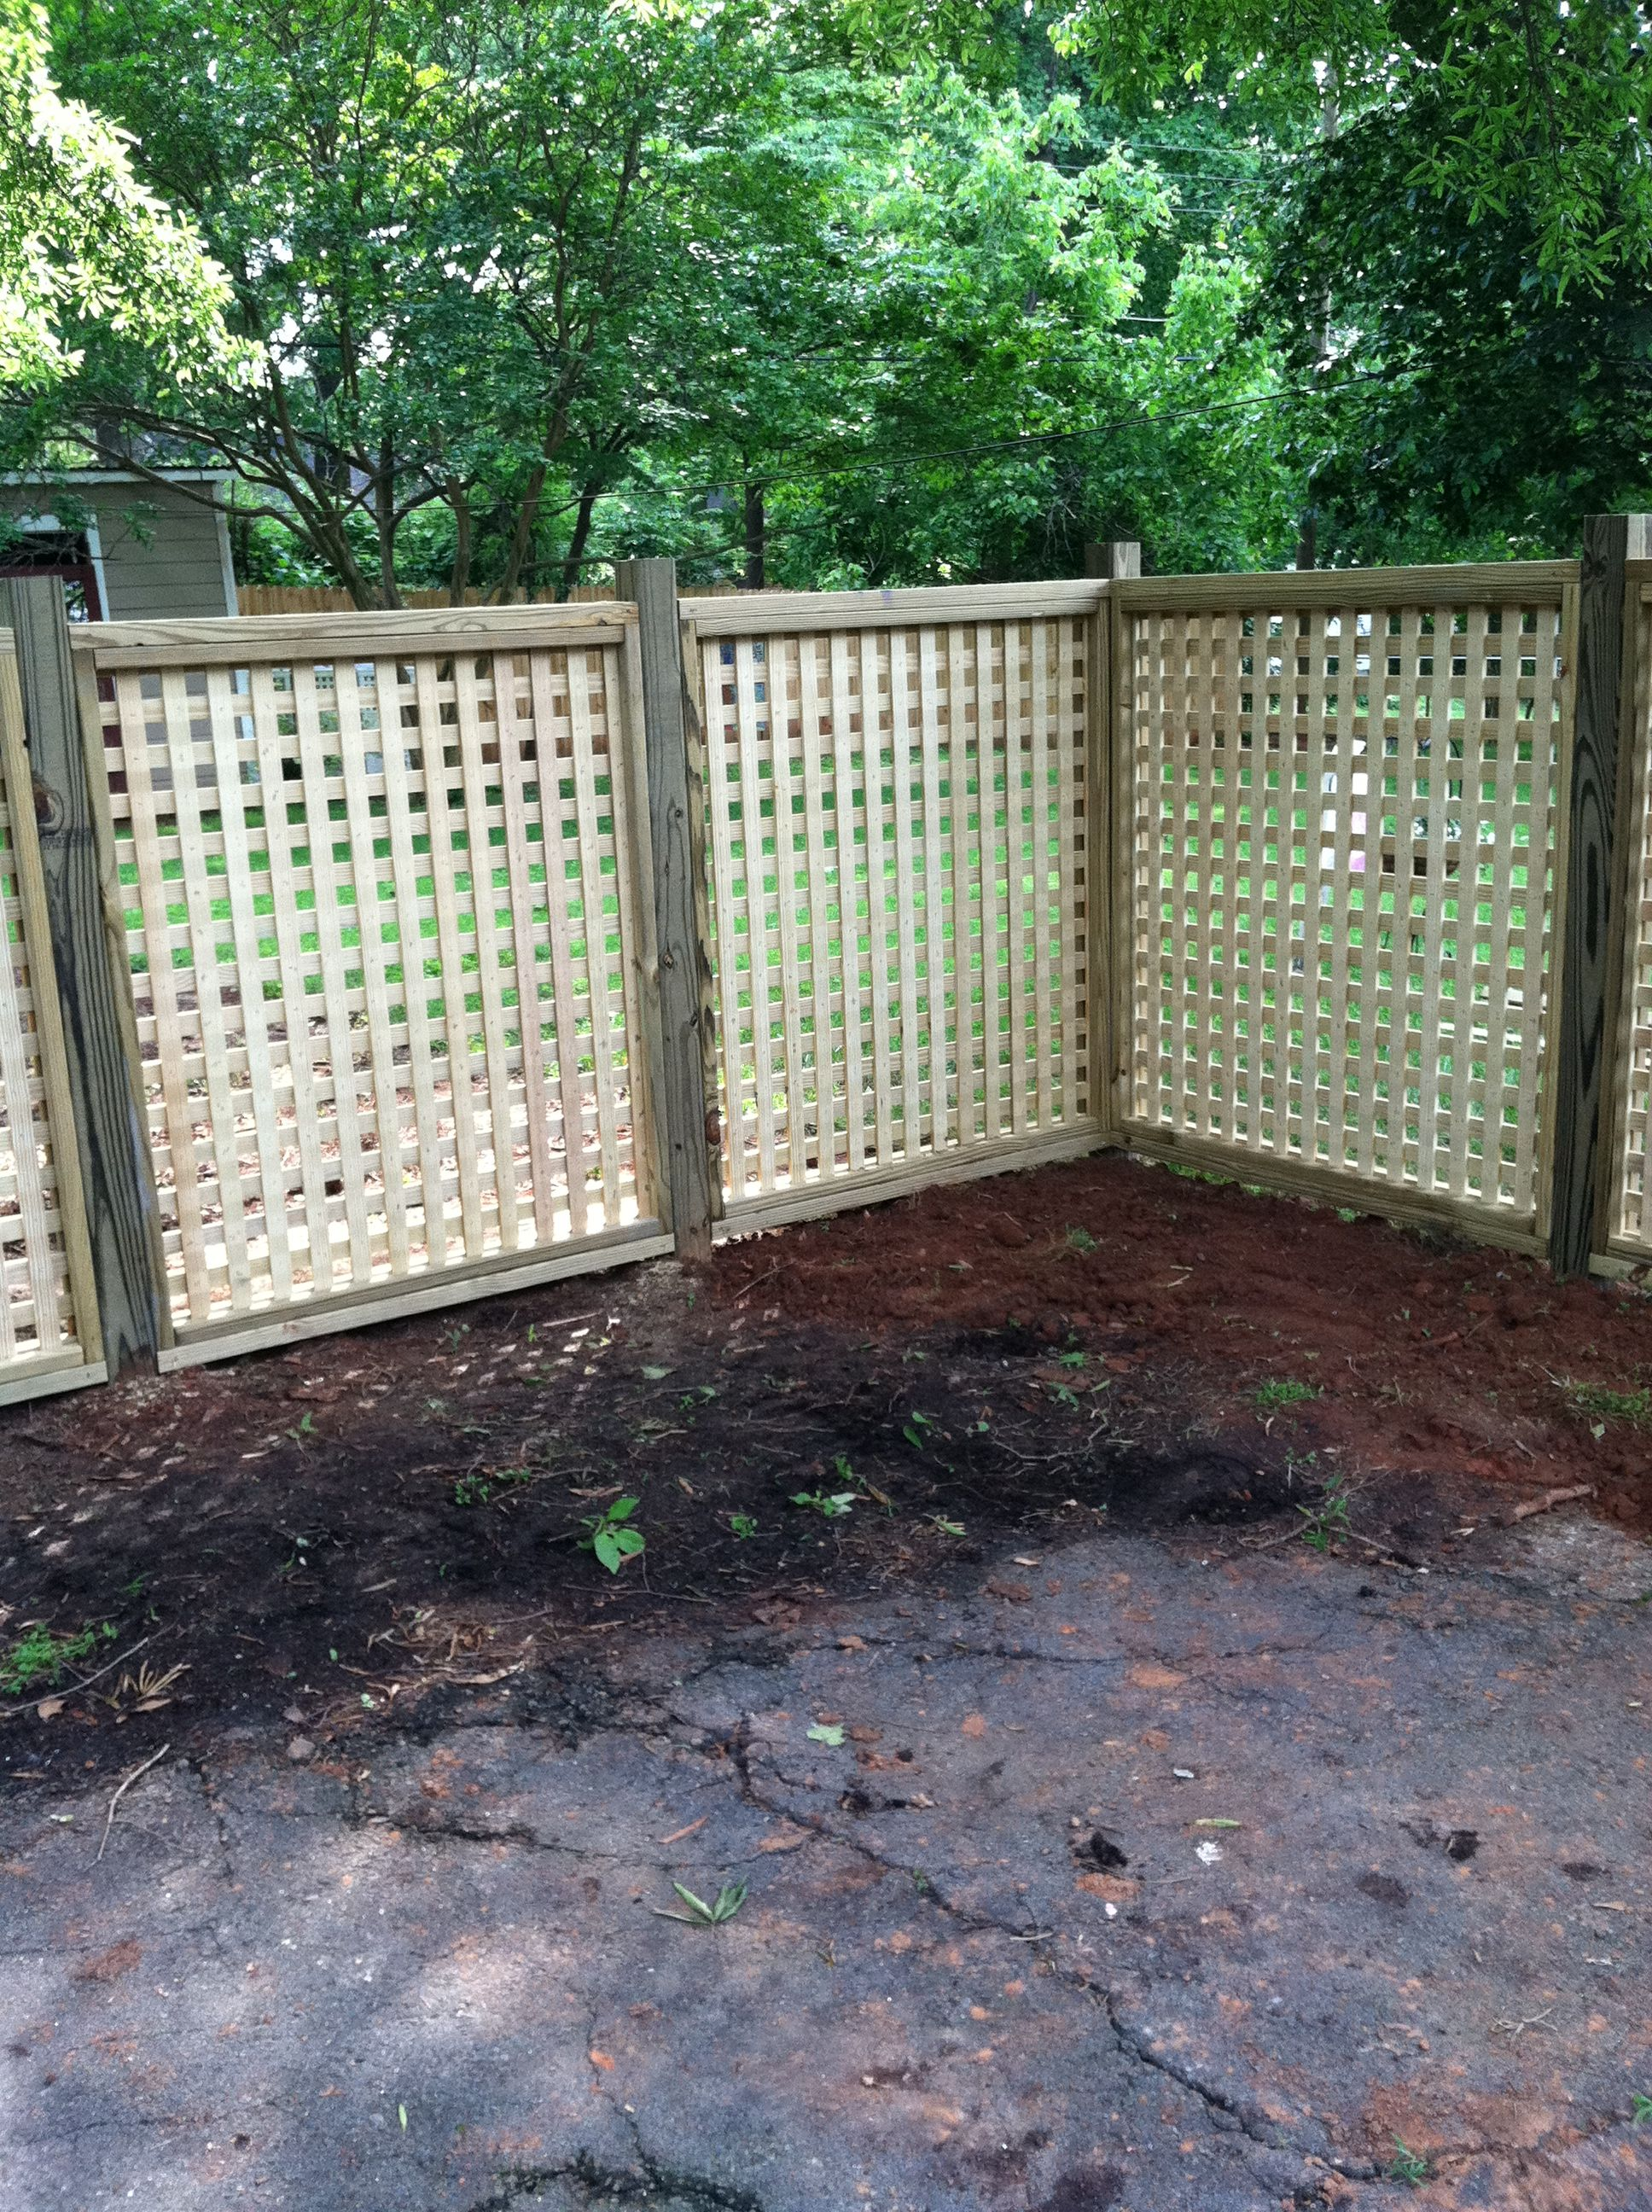 New Backyard Fence : New backyard fencelove it  Southern girl  Pinterest